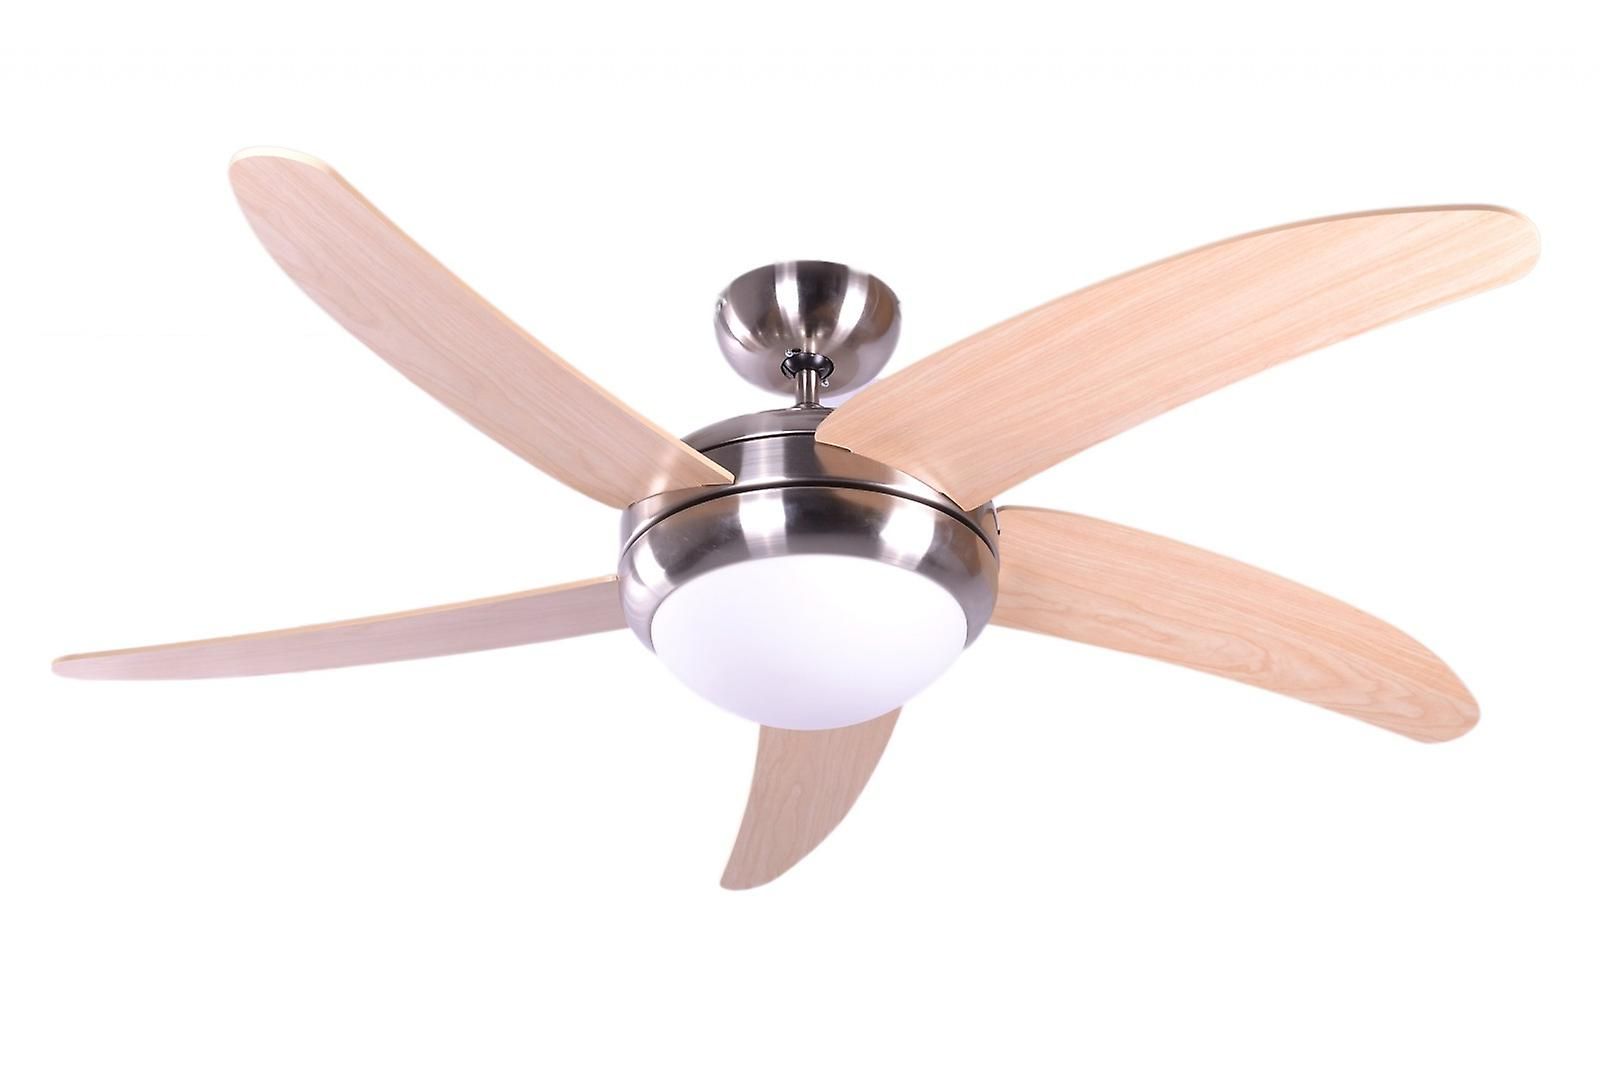 Ceiling fan Makkura Chrome brushed / maple blades with remote control